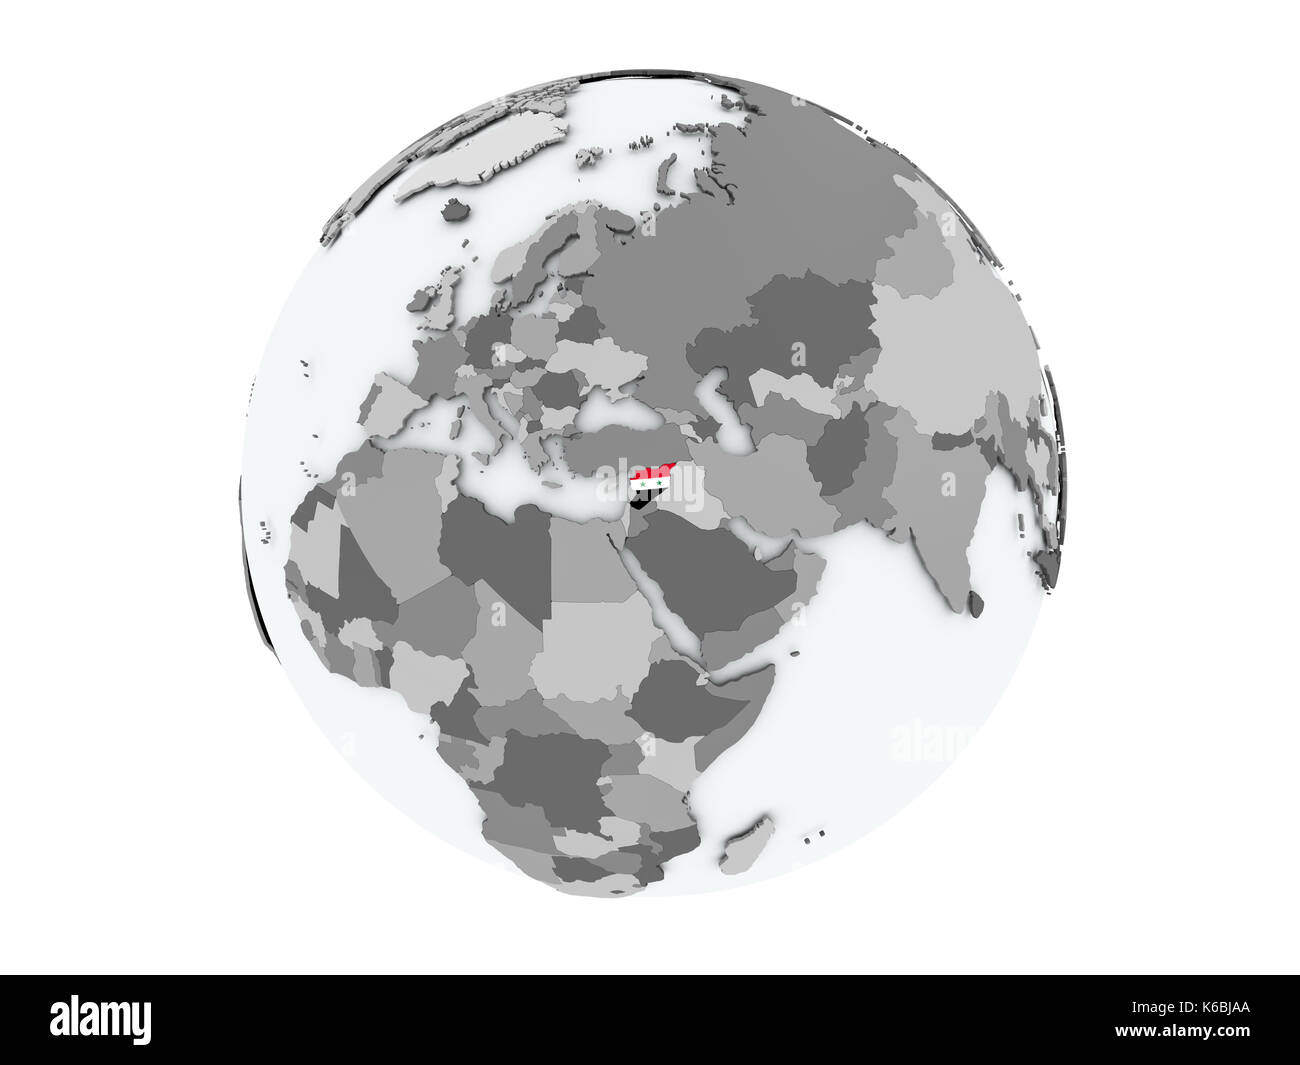 Syria on political globe with embedded flags. 3D illustration isolated on white background. - Stock Image